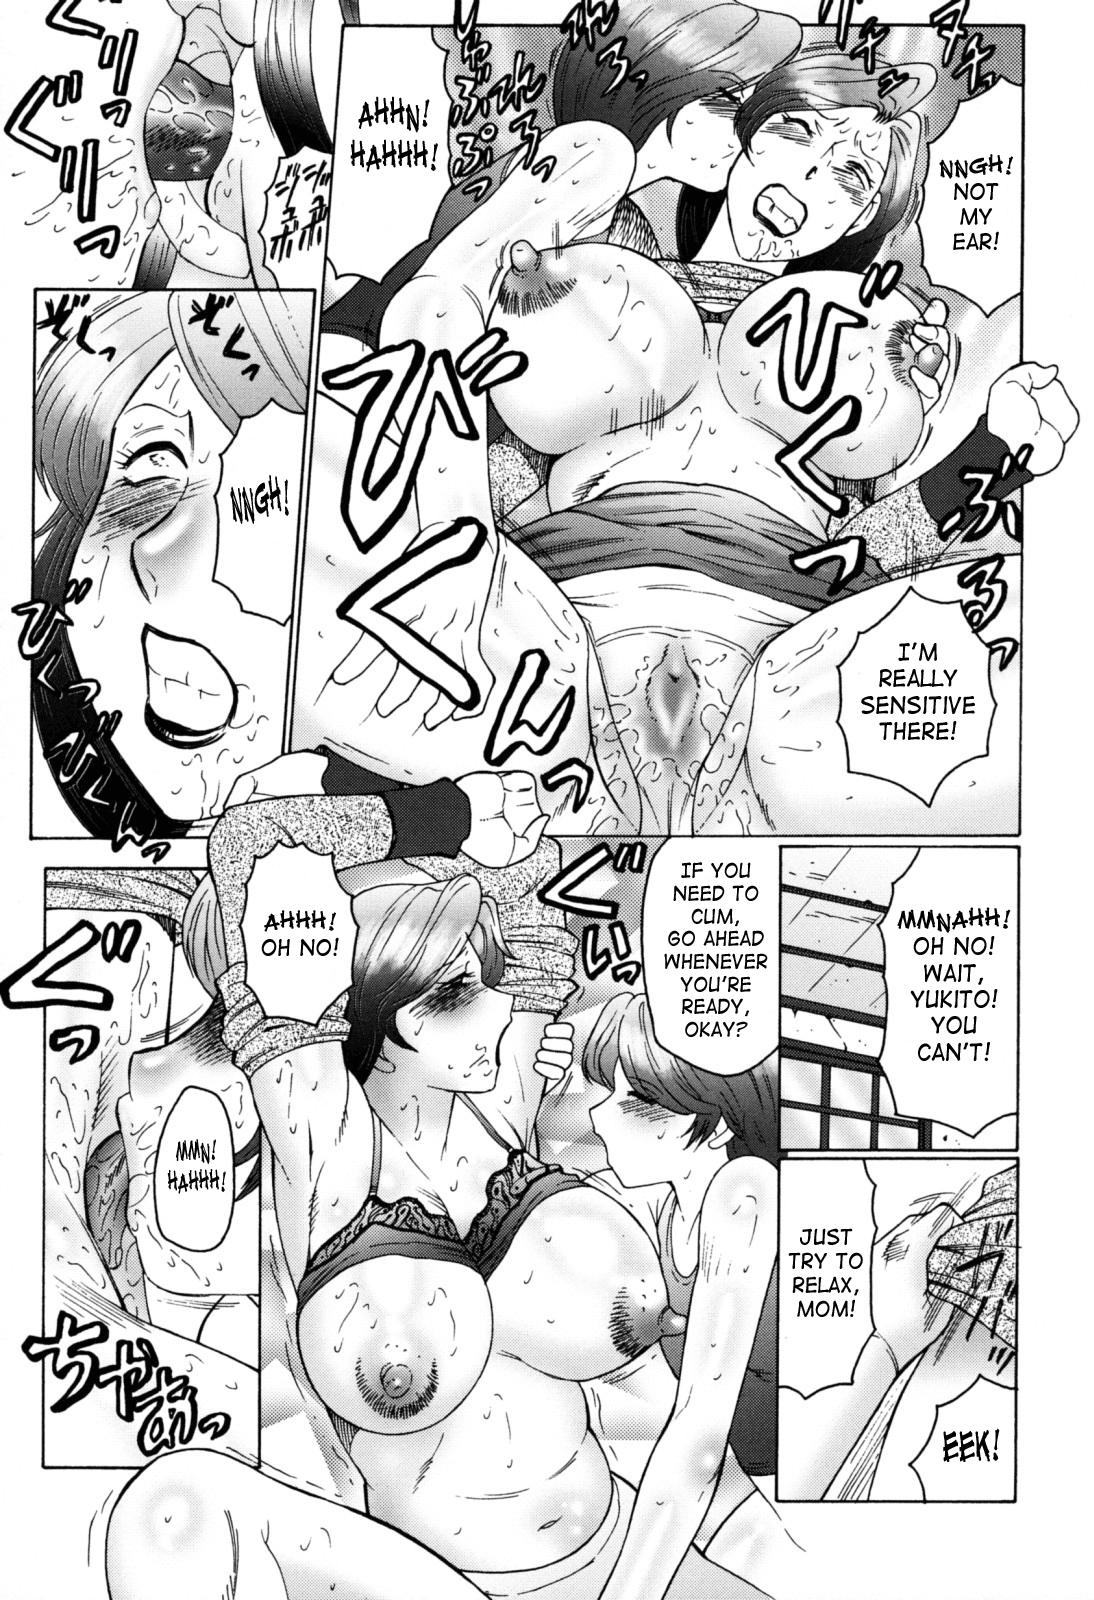 [Fuusen Club] Boshino Toriko - The Captive of Mother and the Son | Enslaved Mother and Son Ch. 1-5 [English] [SaHa] 70